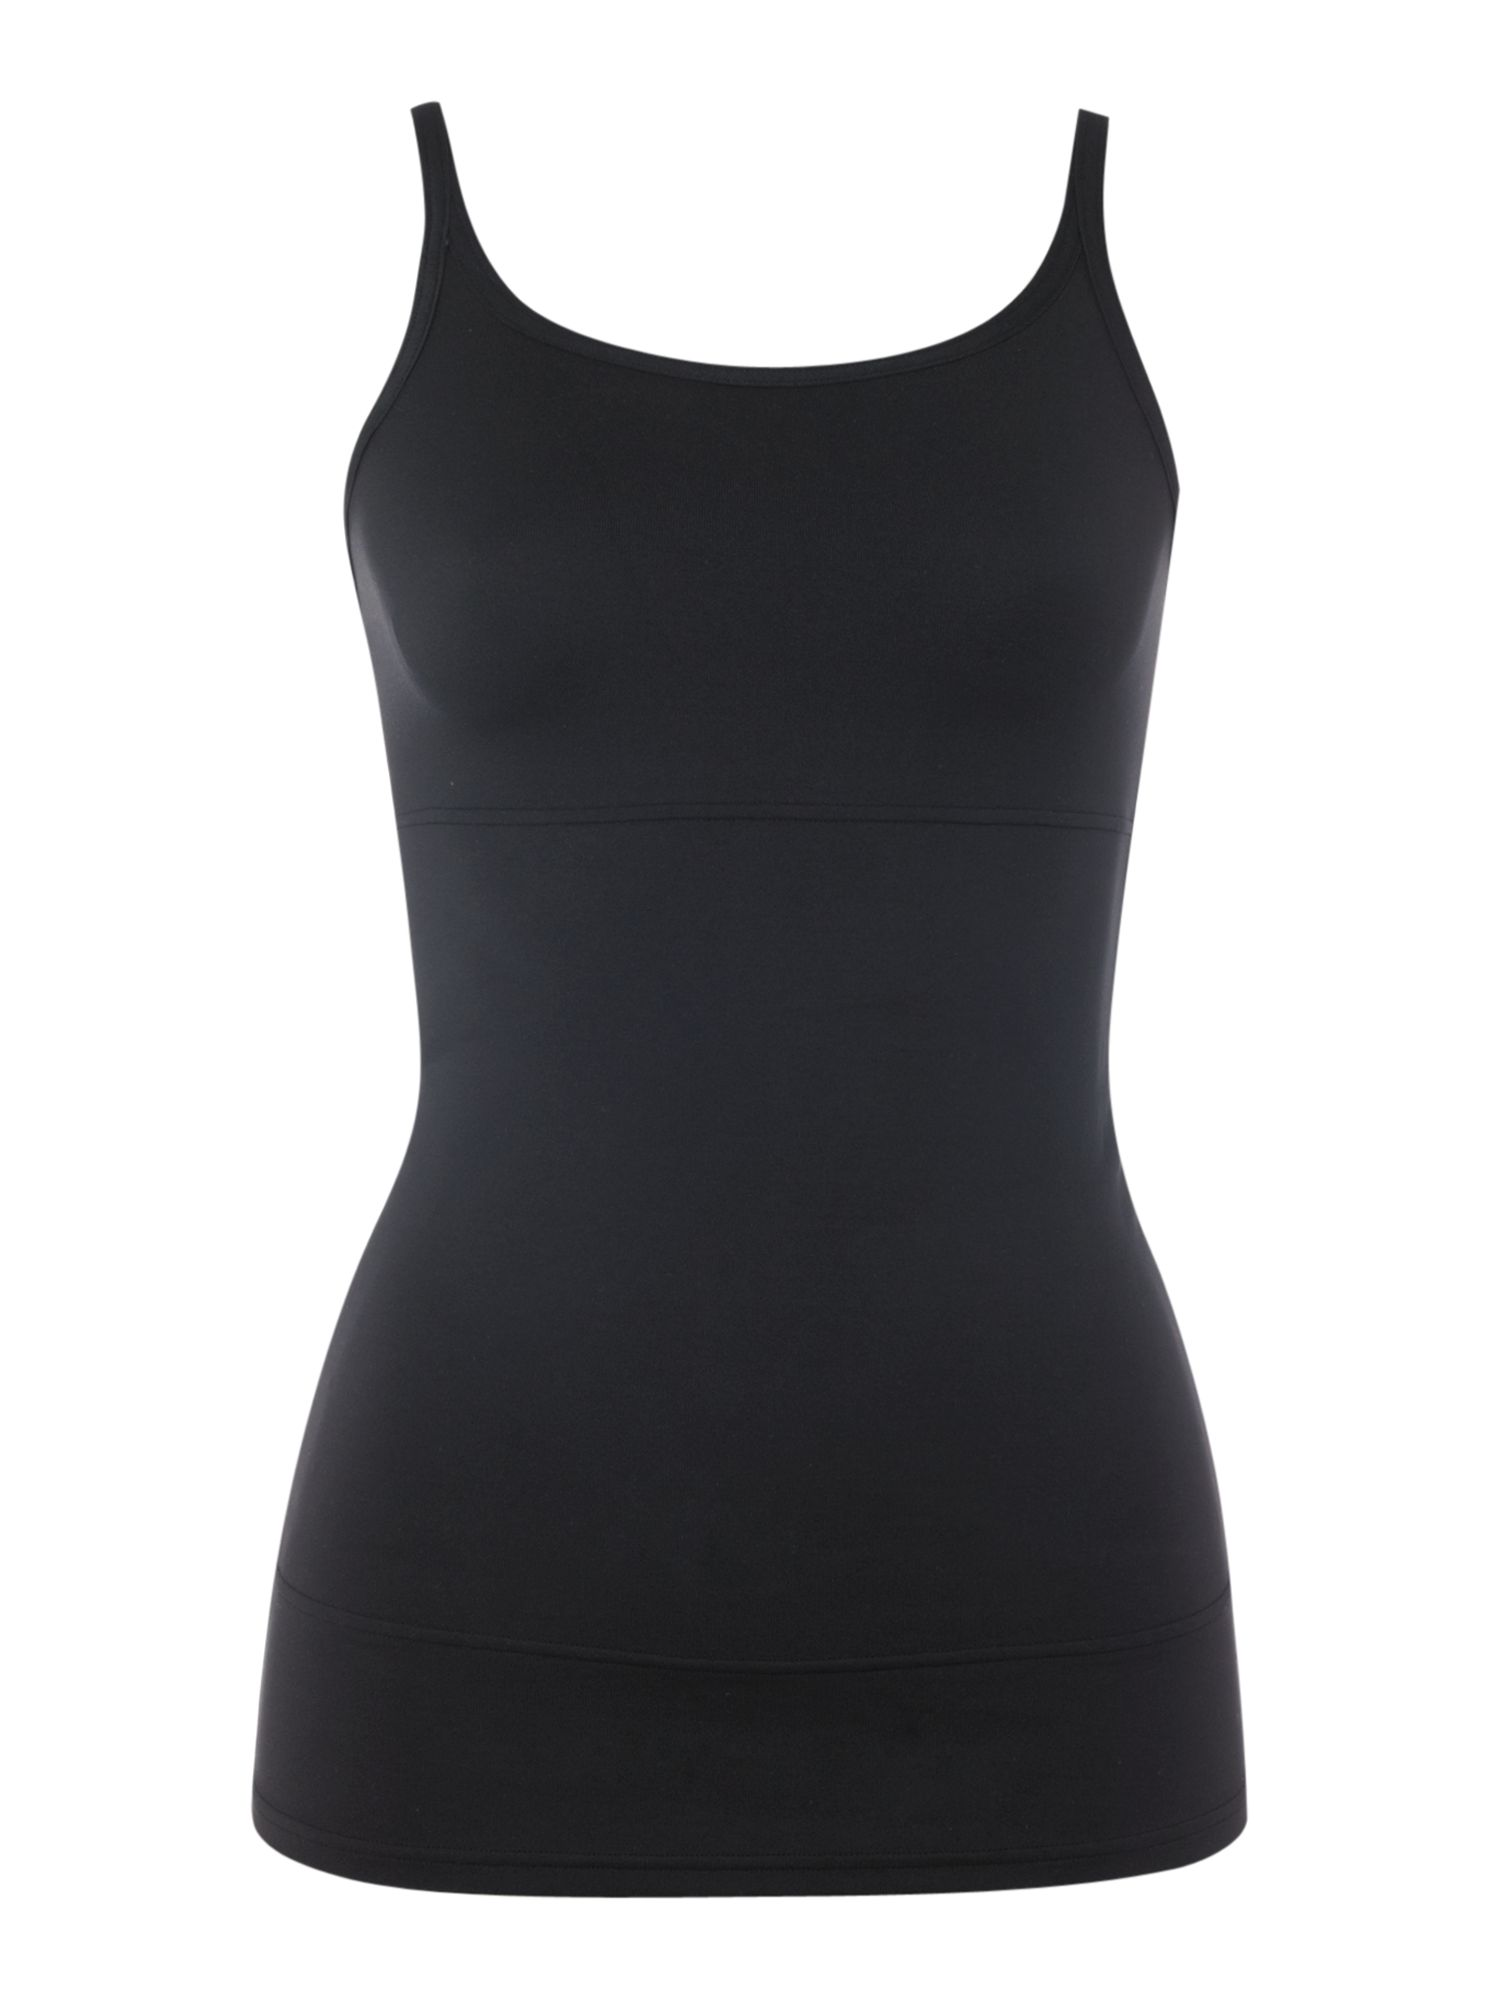 Fat free dressing camisole